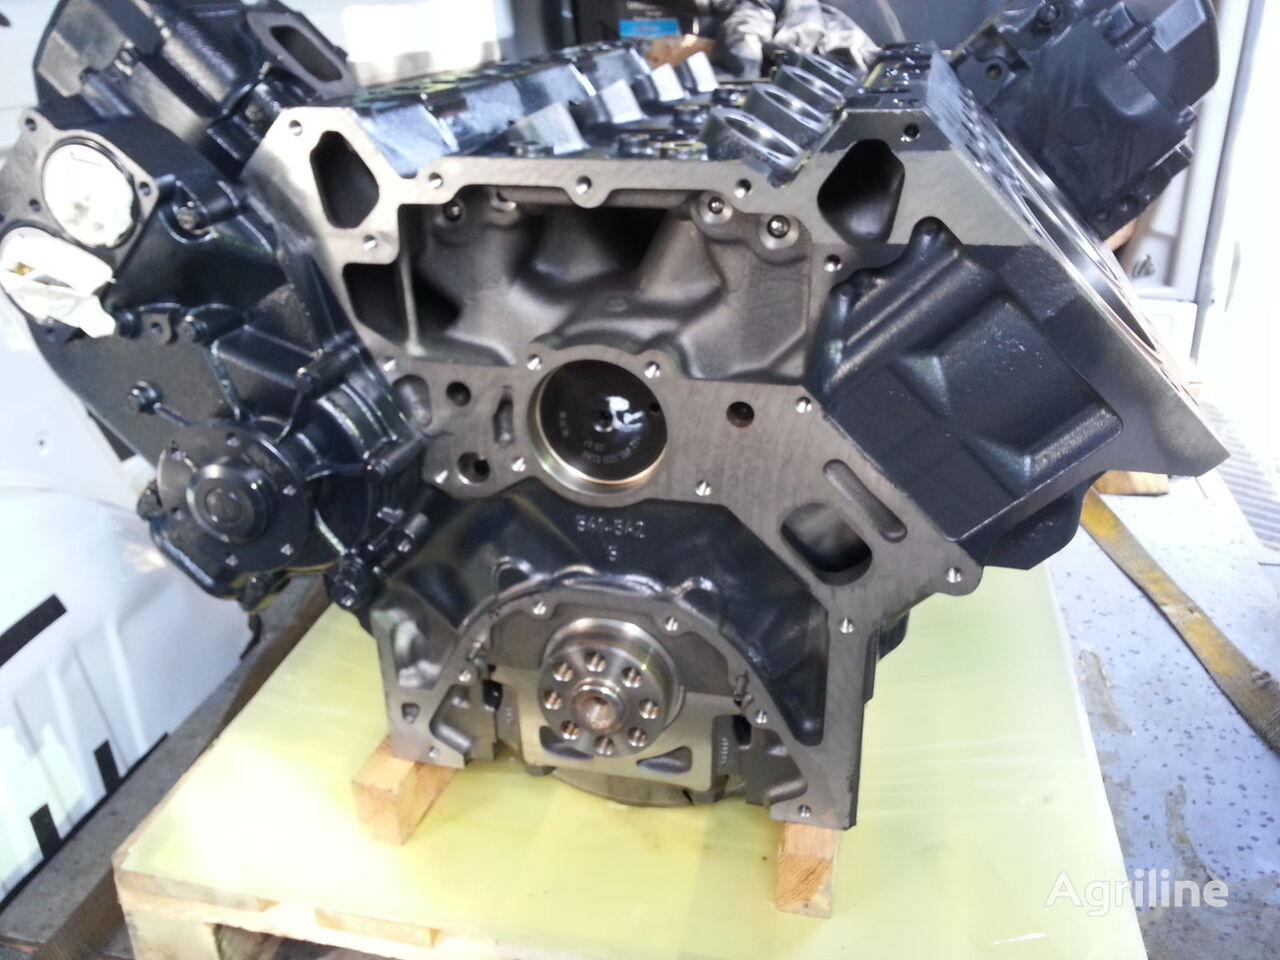 New mercedes benz om 502 la engine for claas combine for Mercedes benz engines for sale